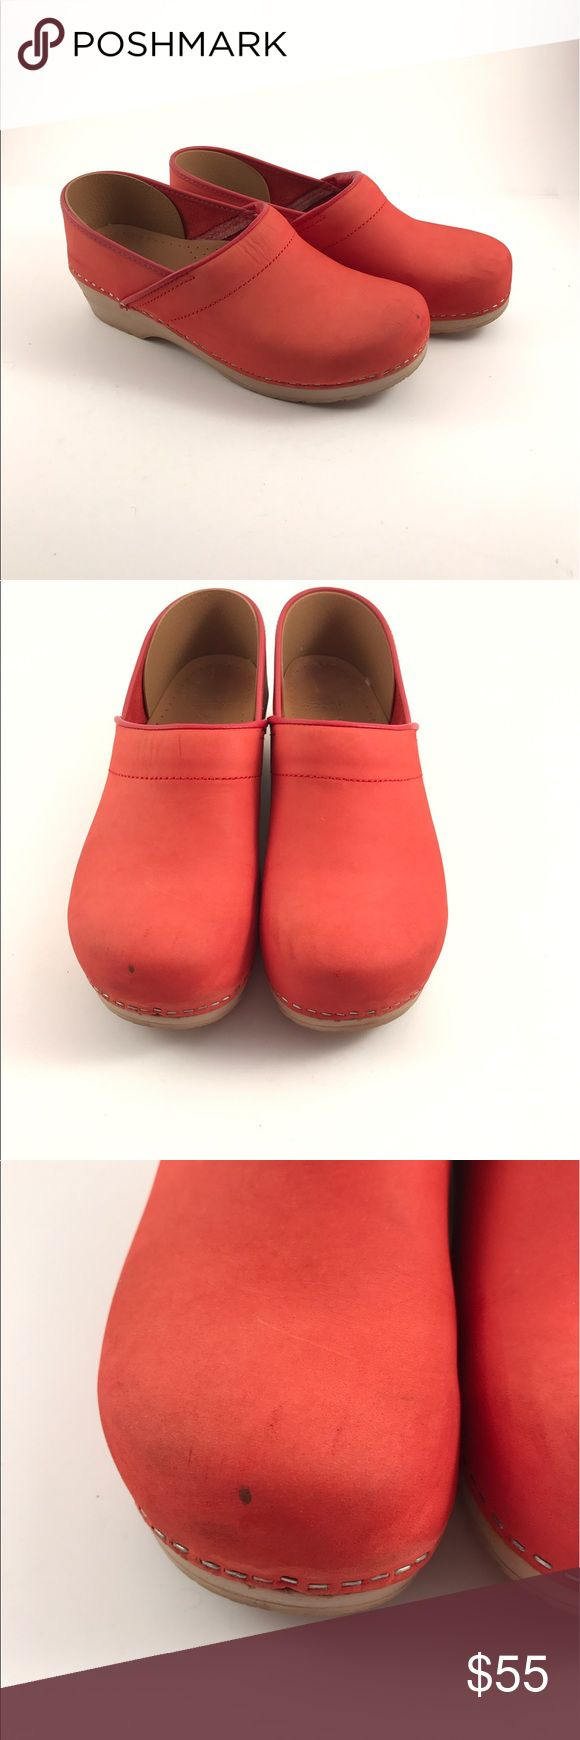 💰 SALE 🤗 Dansko red clogs Amazing Dansko red clogs. Pre-owned see pictures for condition. Super comfortable and unique color. Dansko Shoes Mules & Clogs